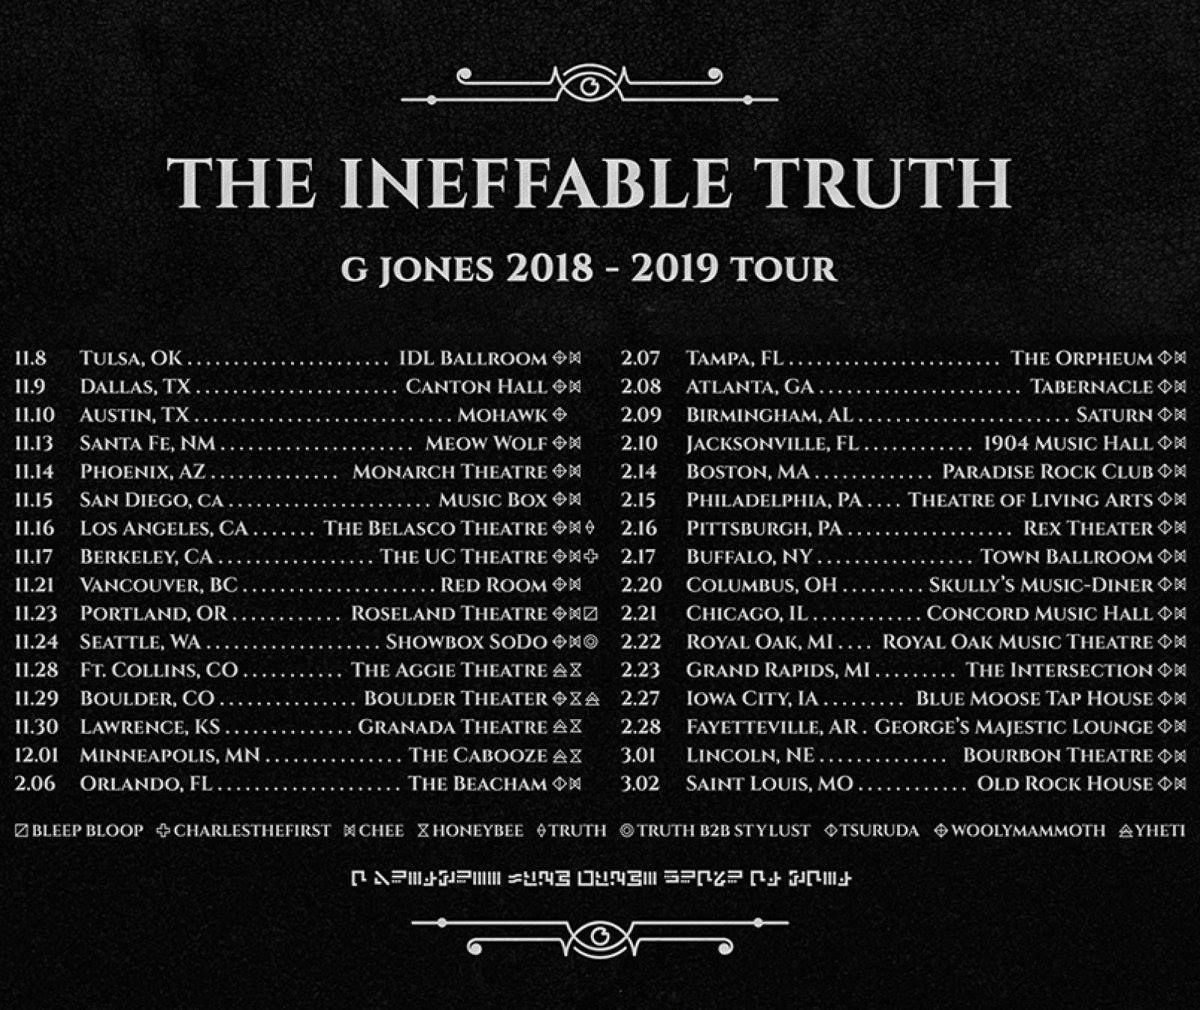 G Jones The Ineffable Truth Tour 2018